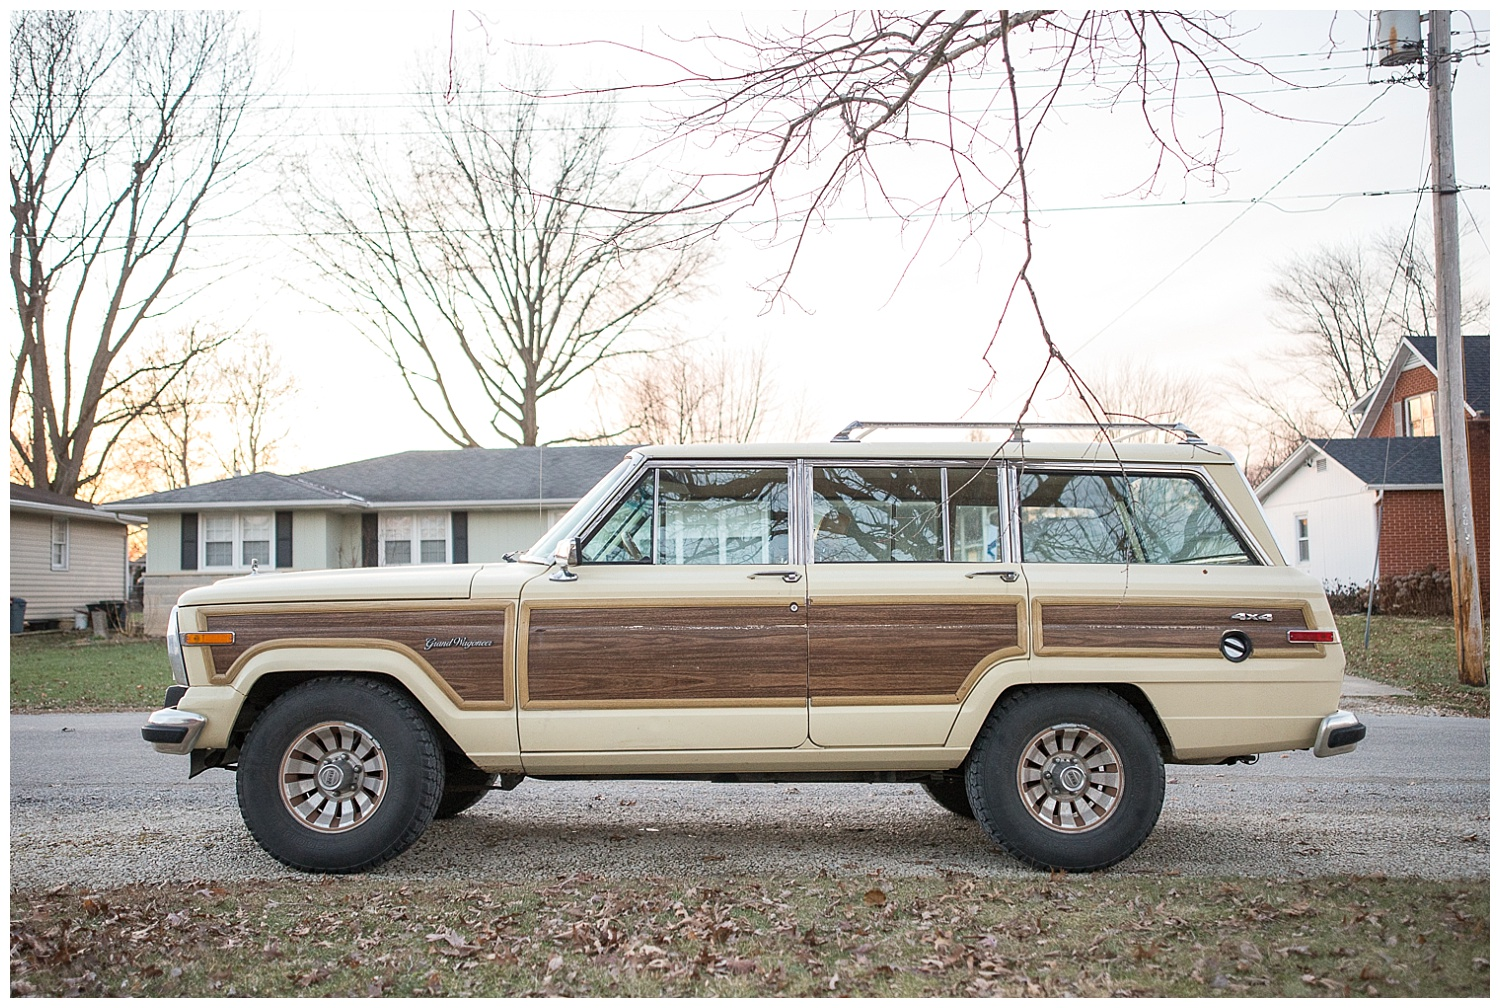 Kevin's 1988 Jeep Grand Wagoneer.  Be still my heart.